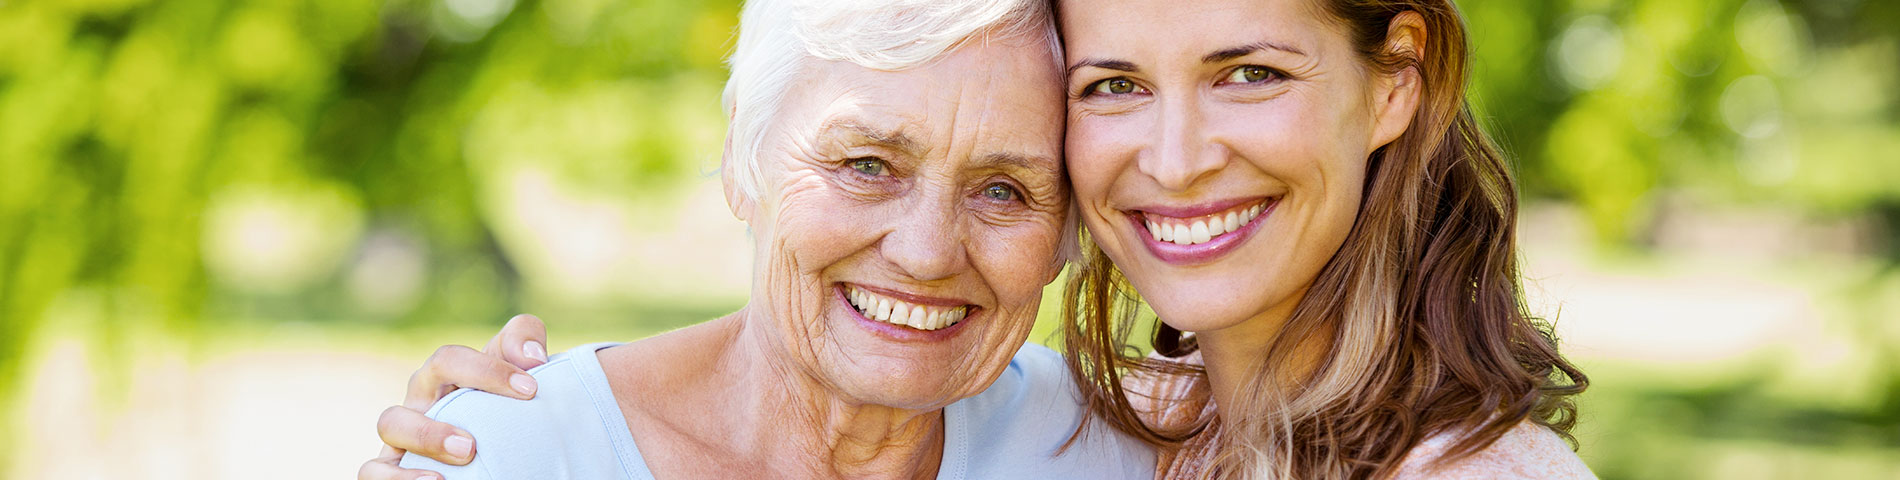 Best Practices When Researching Assisted Living Communities for a Loved One